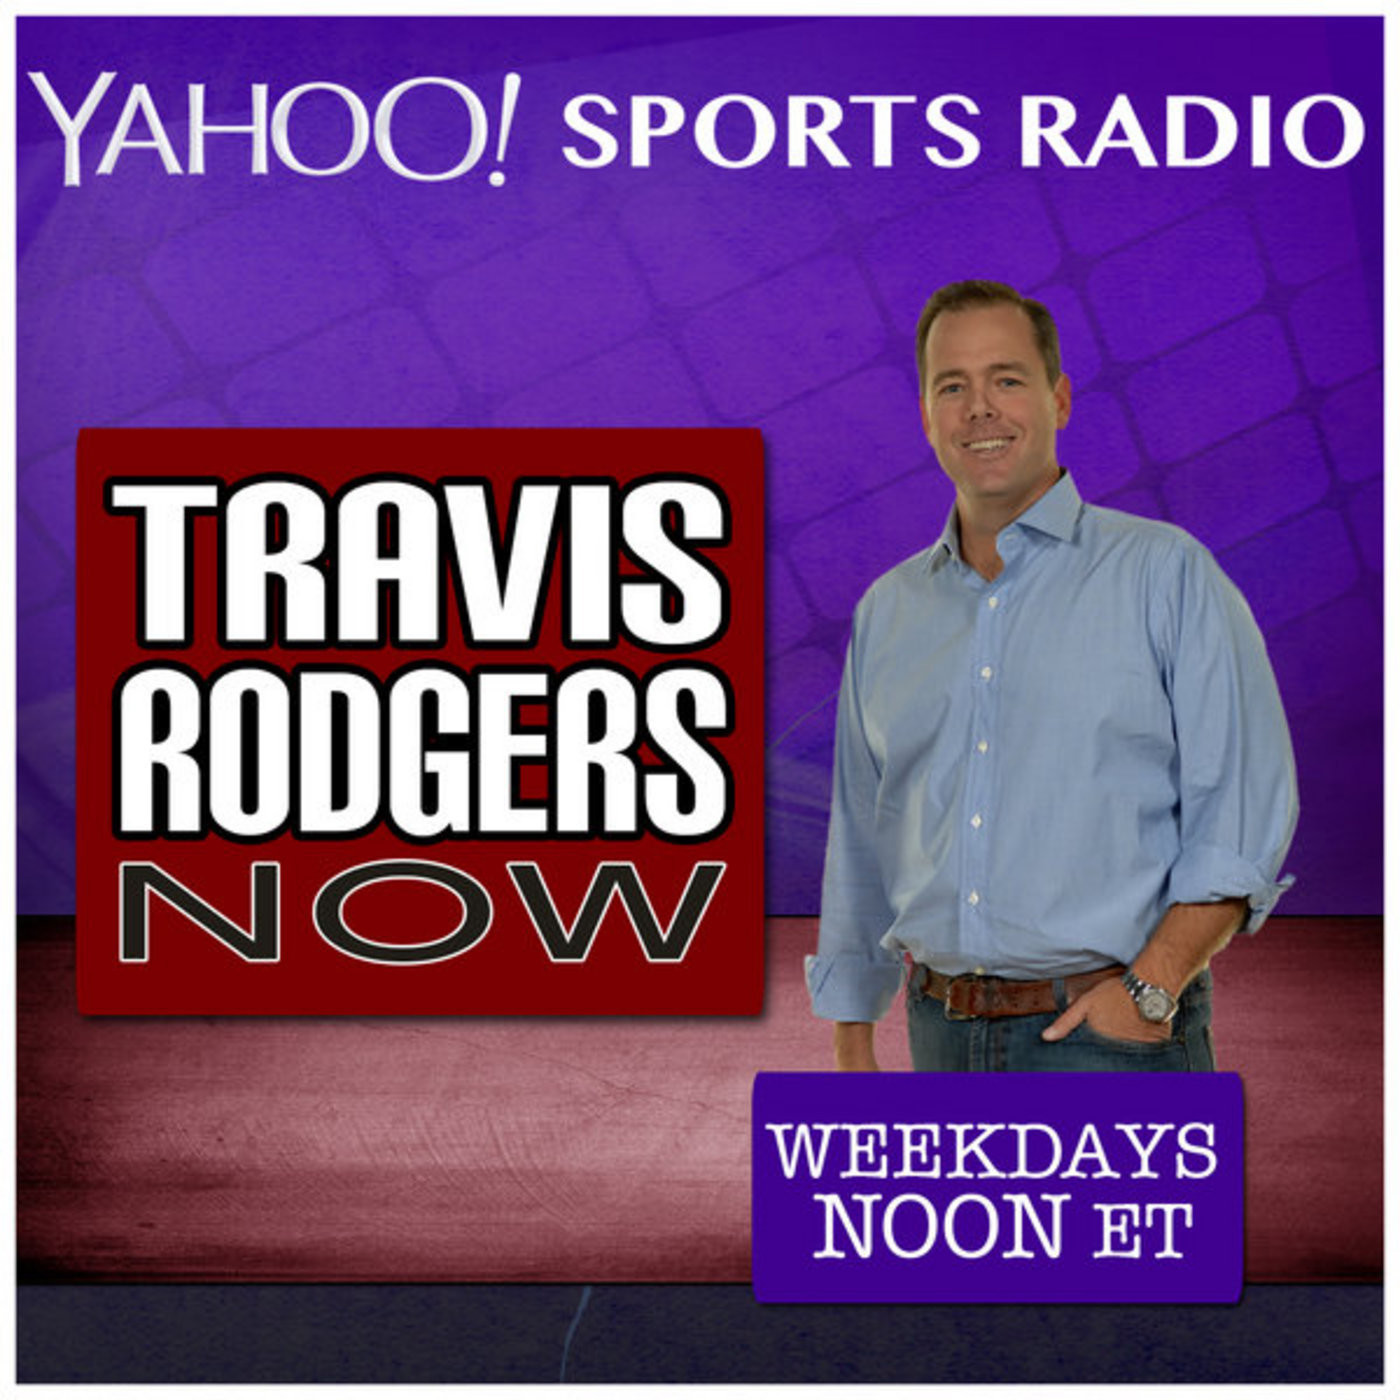 06/14/16 Travis Rodgers NOW HR 2